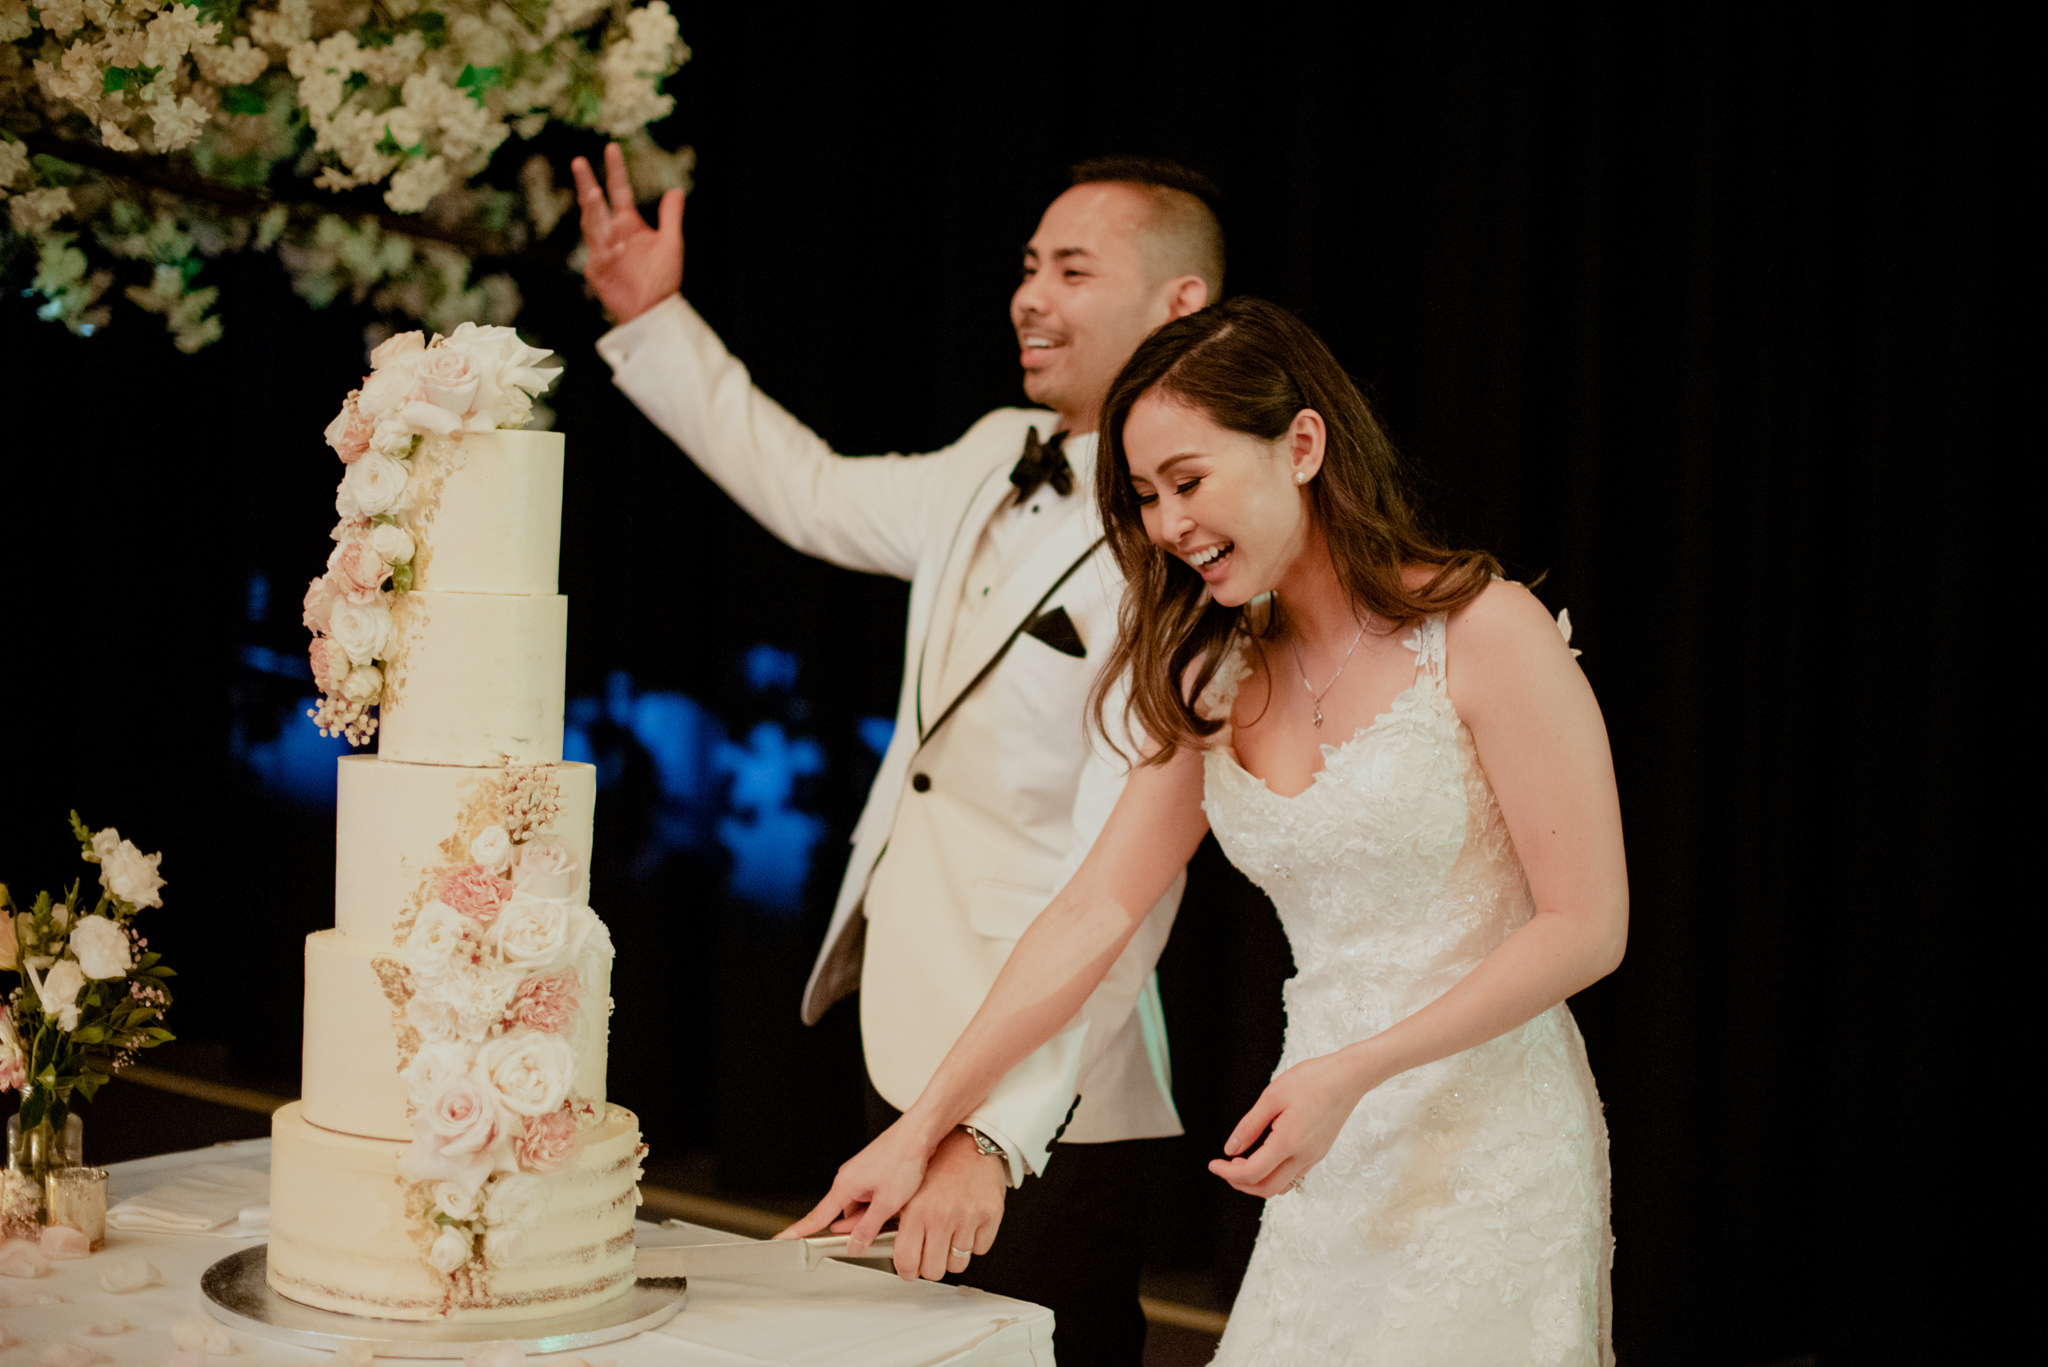 Newlyweds cut into their five tiered wedding cake and laugh